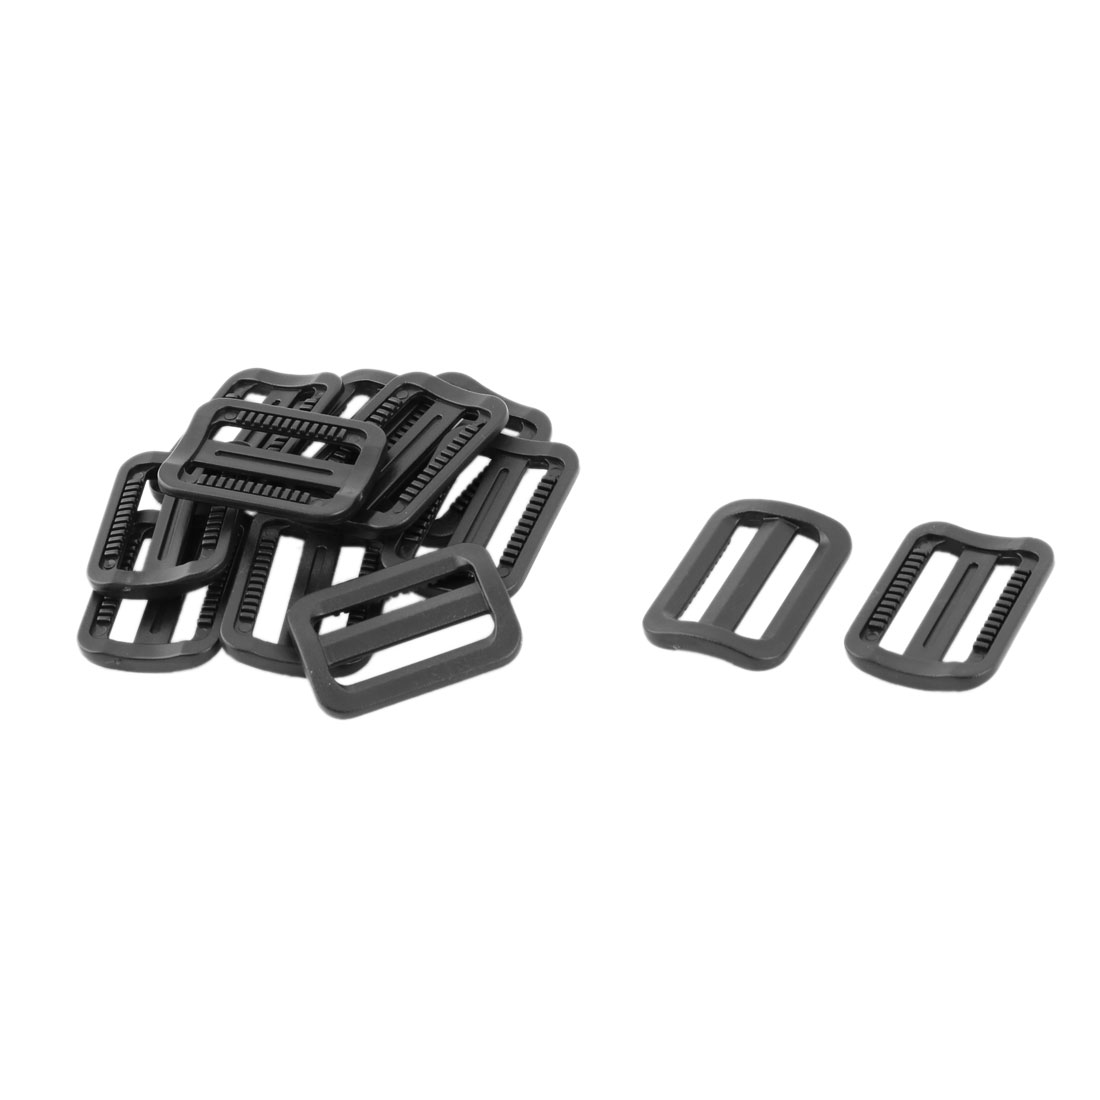 Travel Plastic Adjustable Backpack Tri Glide Buckle Black 25mm Strap Width 12pcs